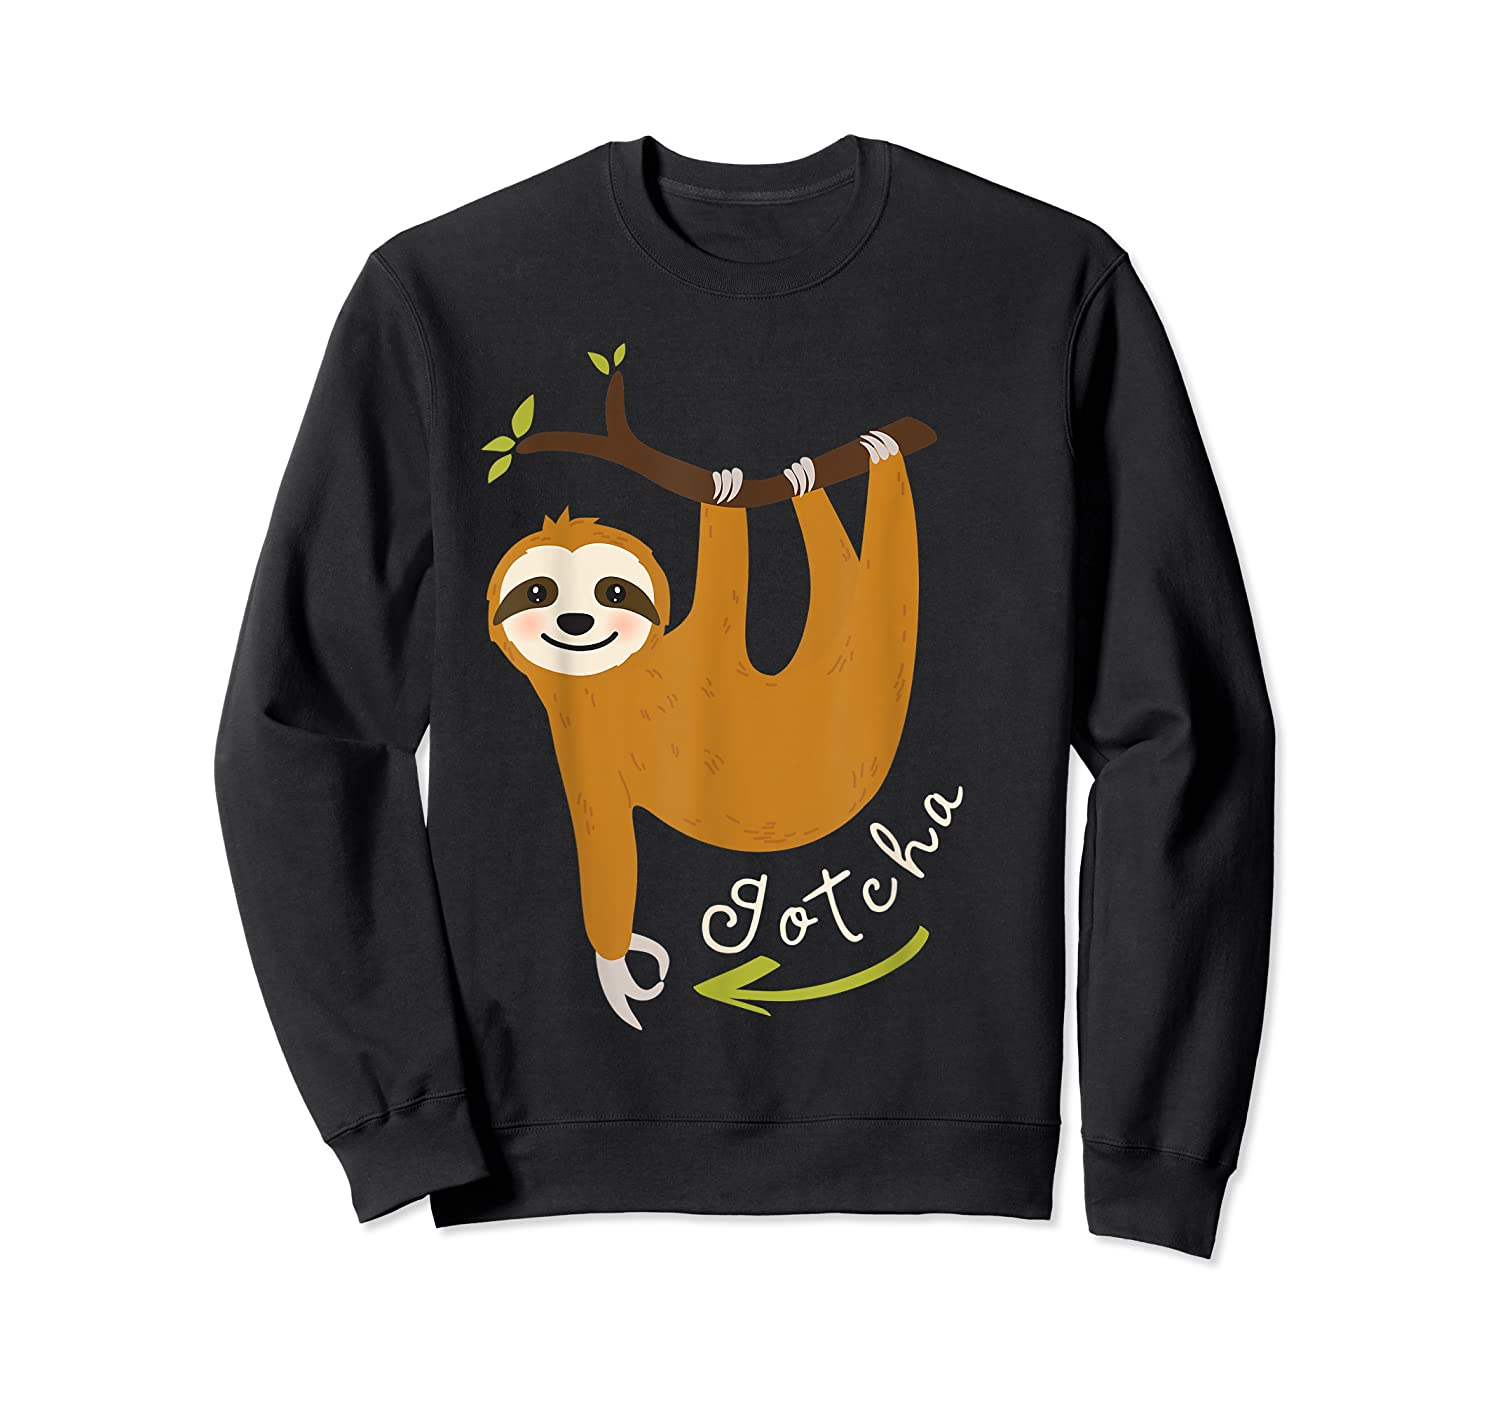 Finger Circle Game Cute Sloth Funny Made You Look Prank T-shirt Crewneck Sweater